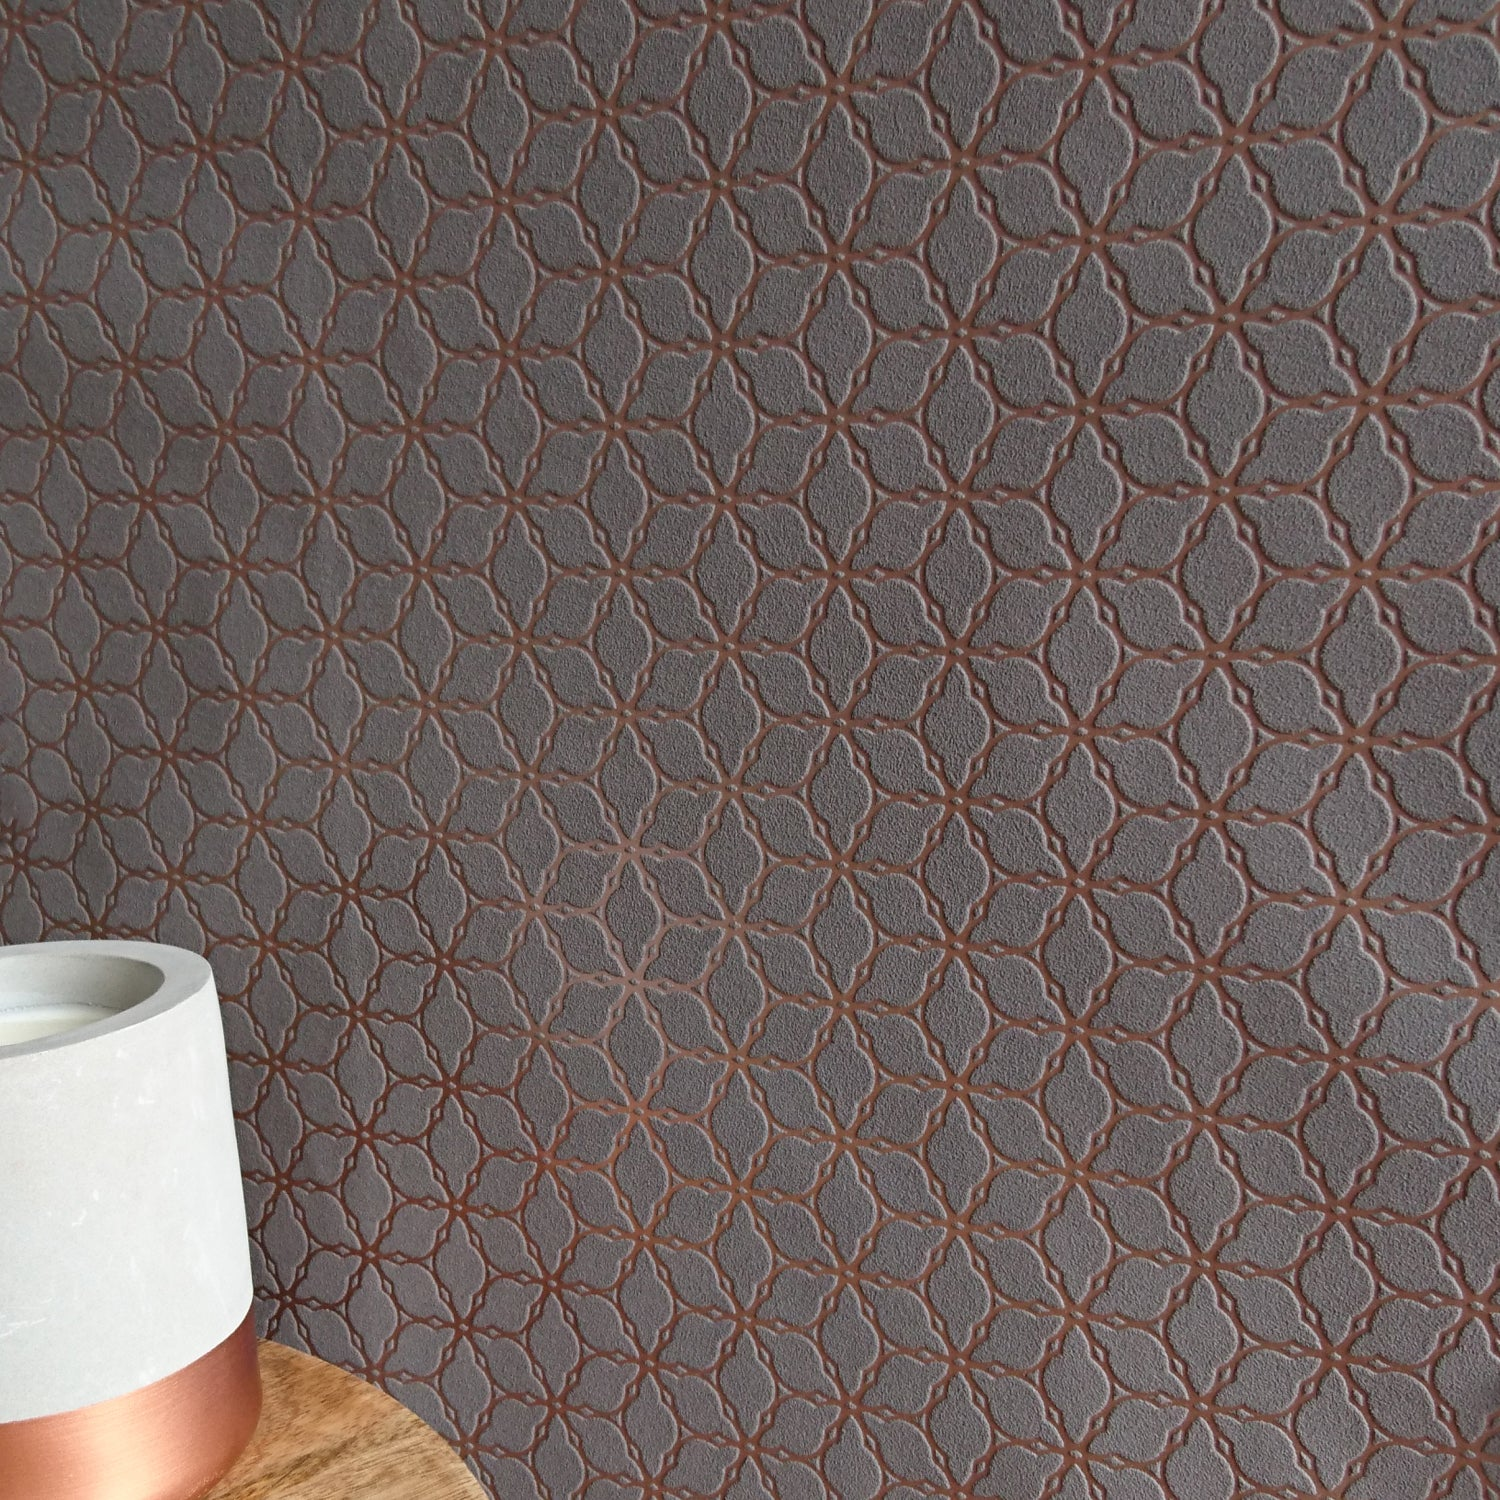 Floral Chain | Chocolate & Copper Geometric Wallpaper